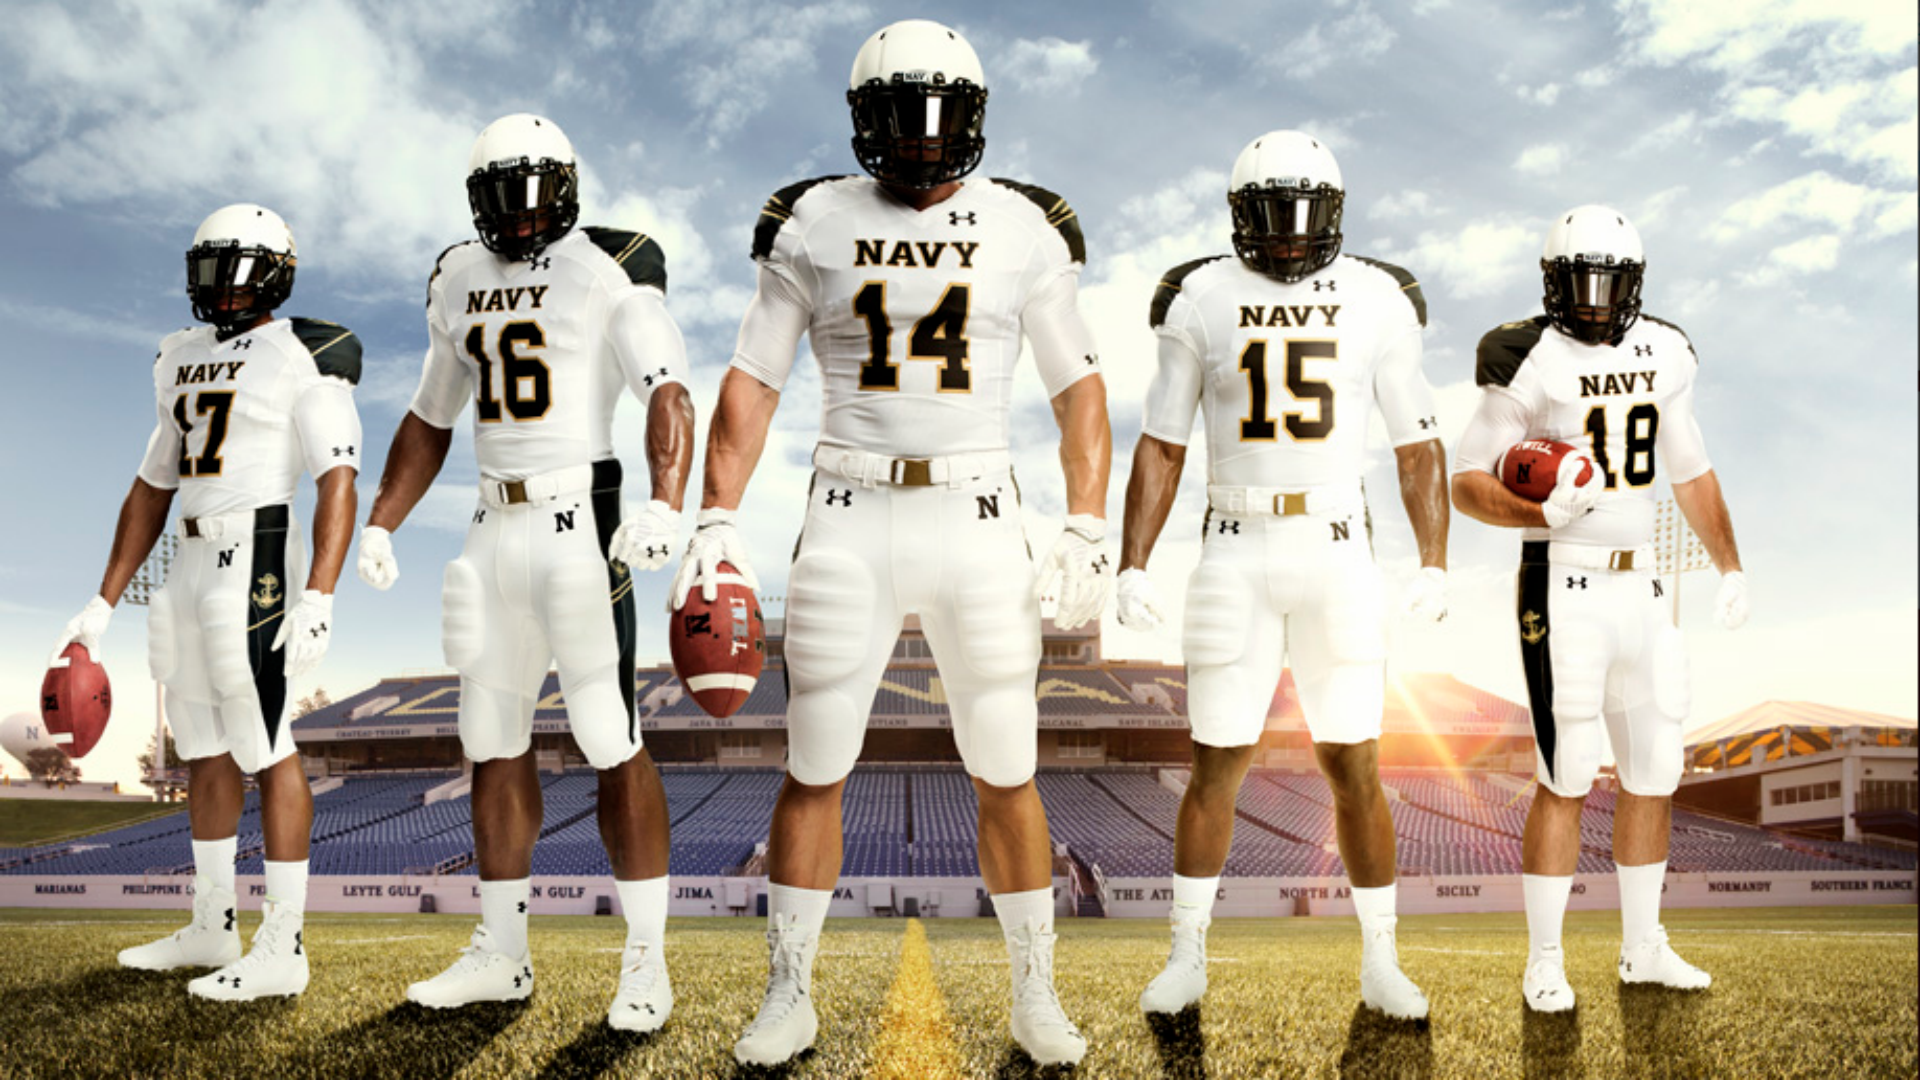 Navy-Uniforms-Twitter-FTR.png